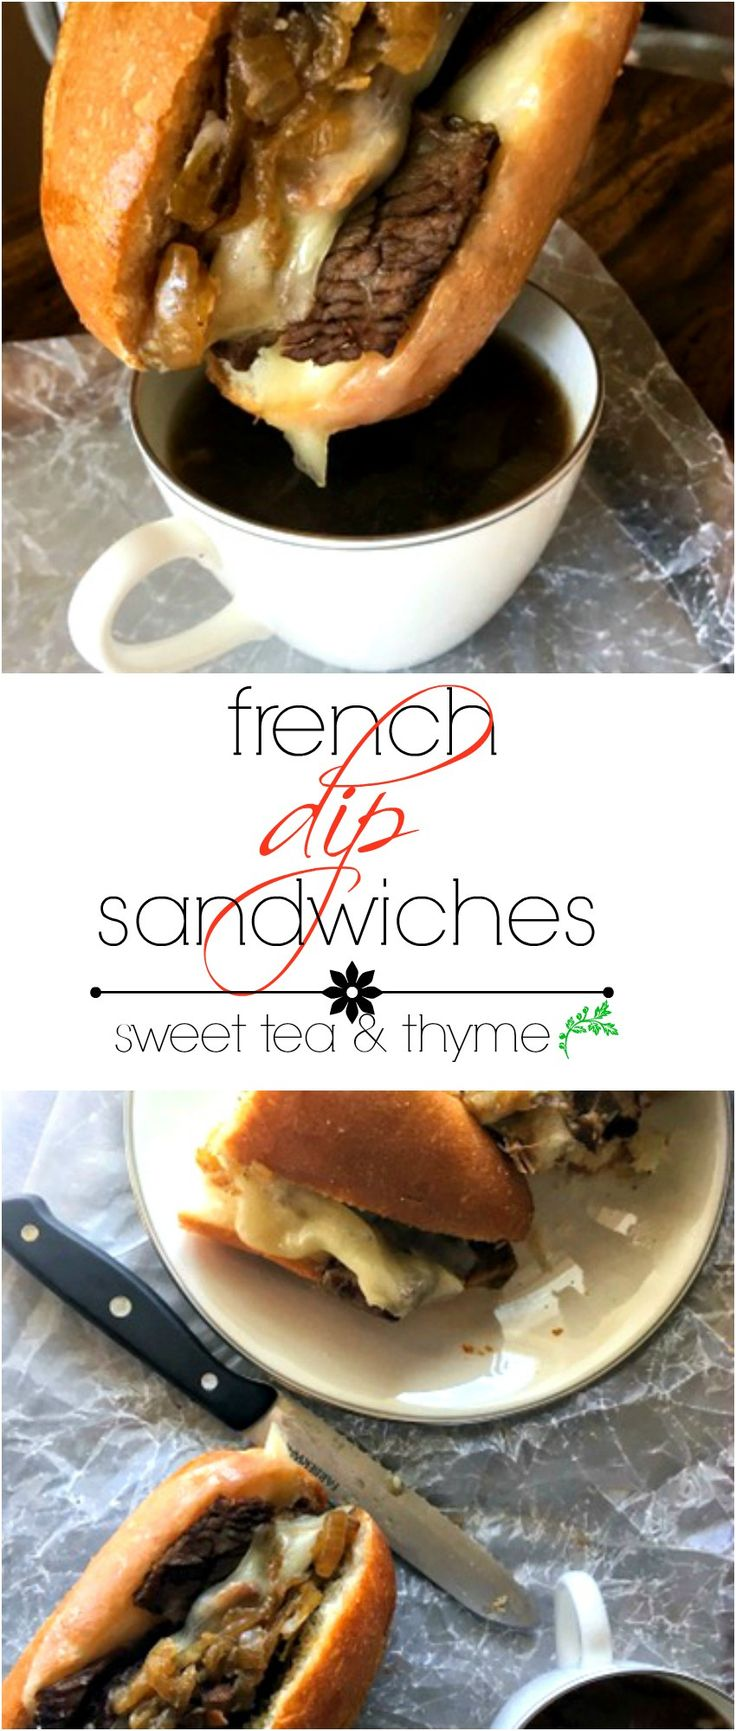 Delicious French dip sandwiches! Beef topped with melty cheese and onions dripping in flavorful au jus, it's the best thing to happen to chuck since pot roast. www.sweetteaandthyme.com